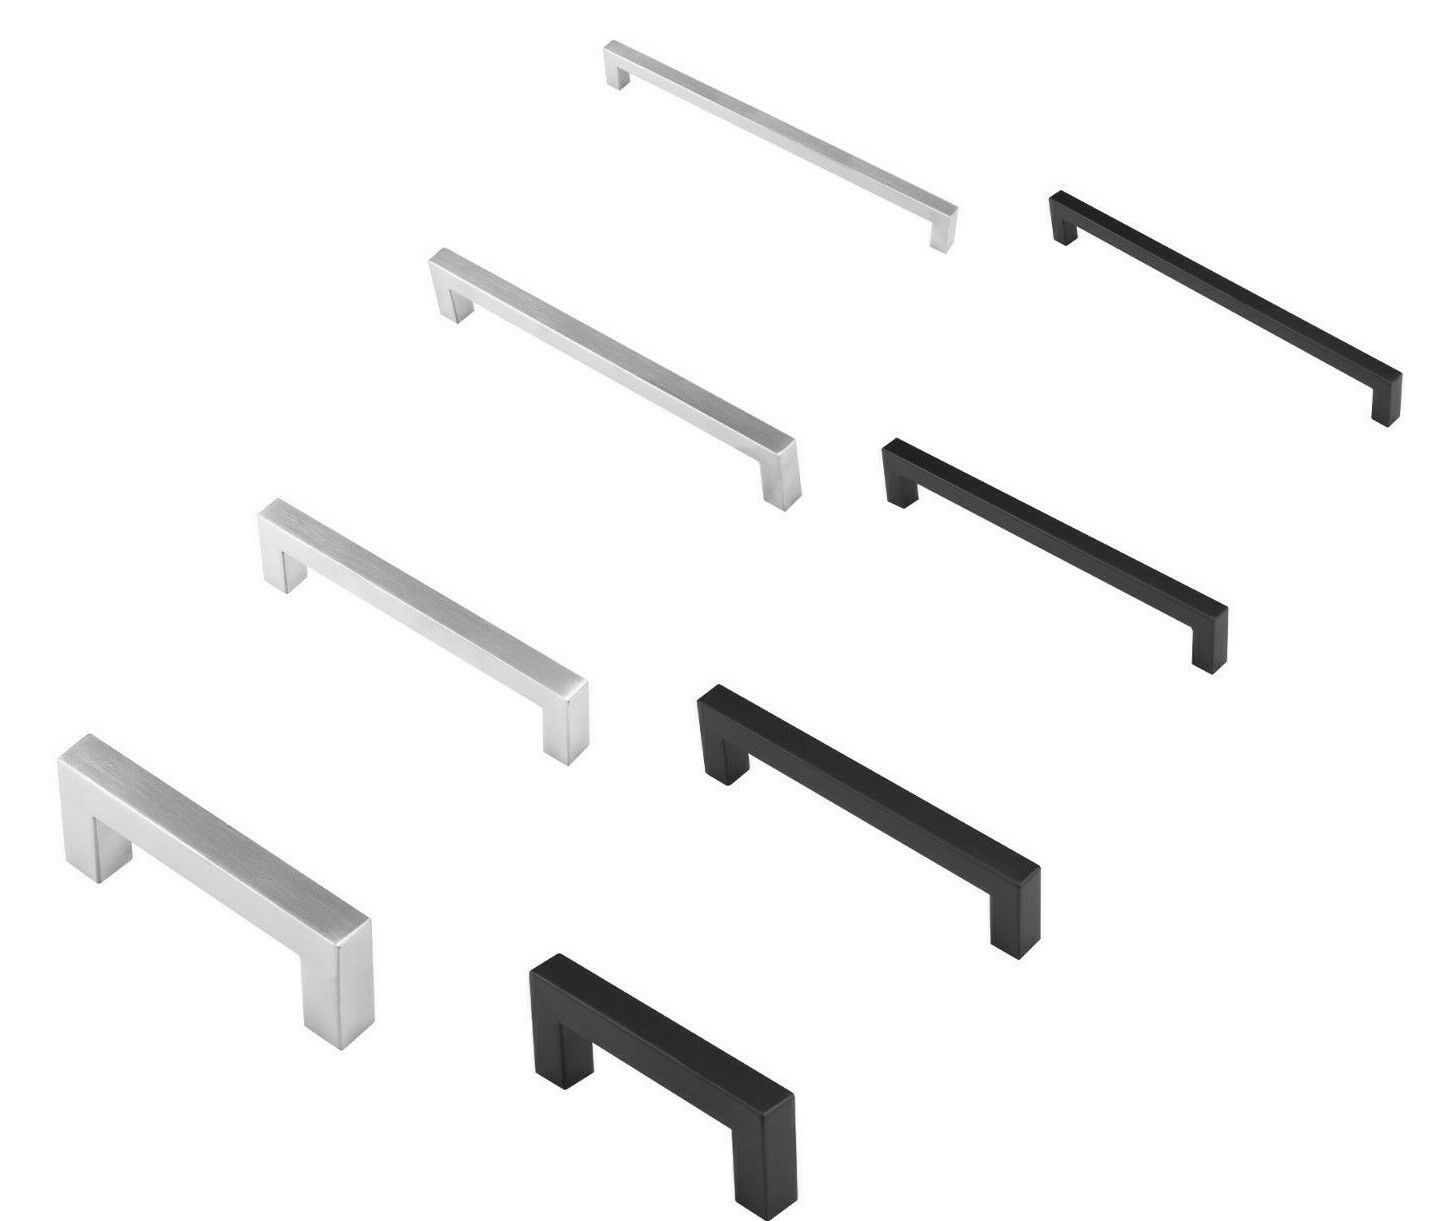 25 Square Stainless Steel Pull Handle For Drawer Kitchen Cabinet Hardware Pack